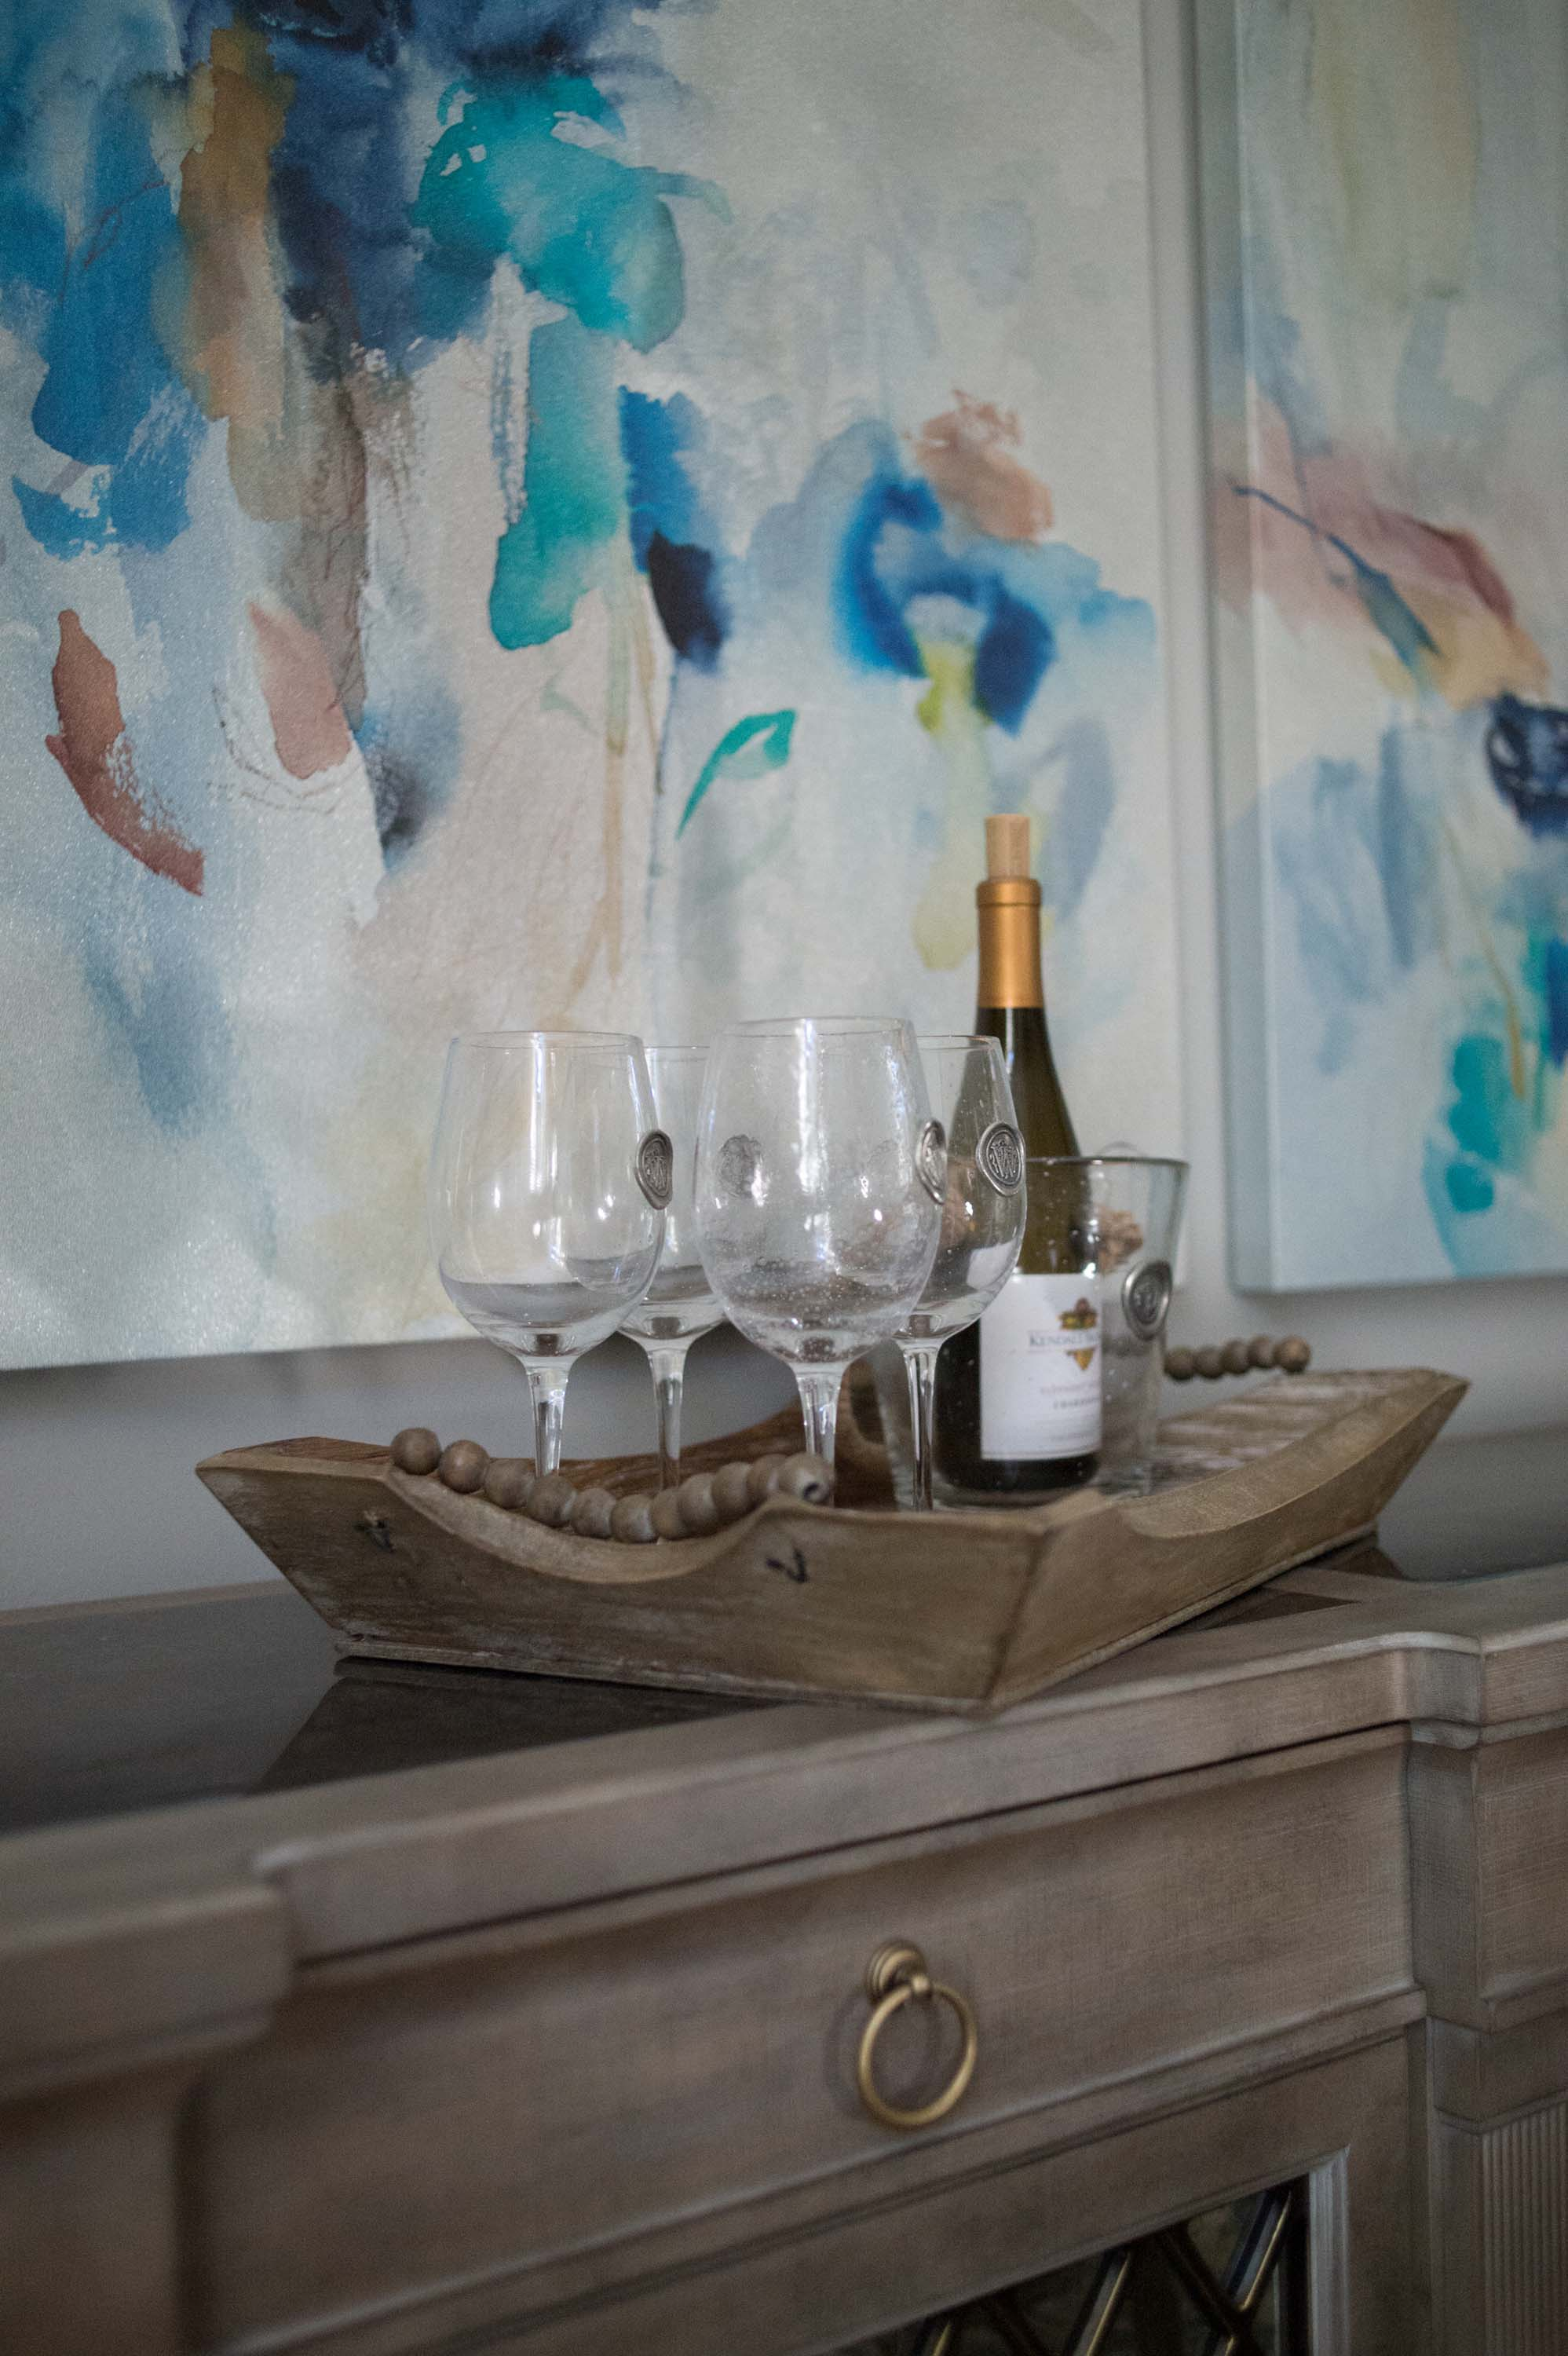 Dining Room Buffet with Wine Glasses & Contemporary Artwork